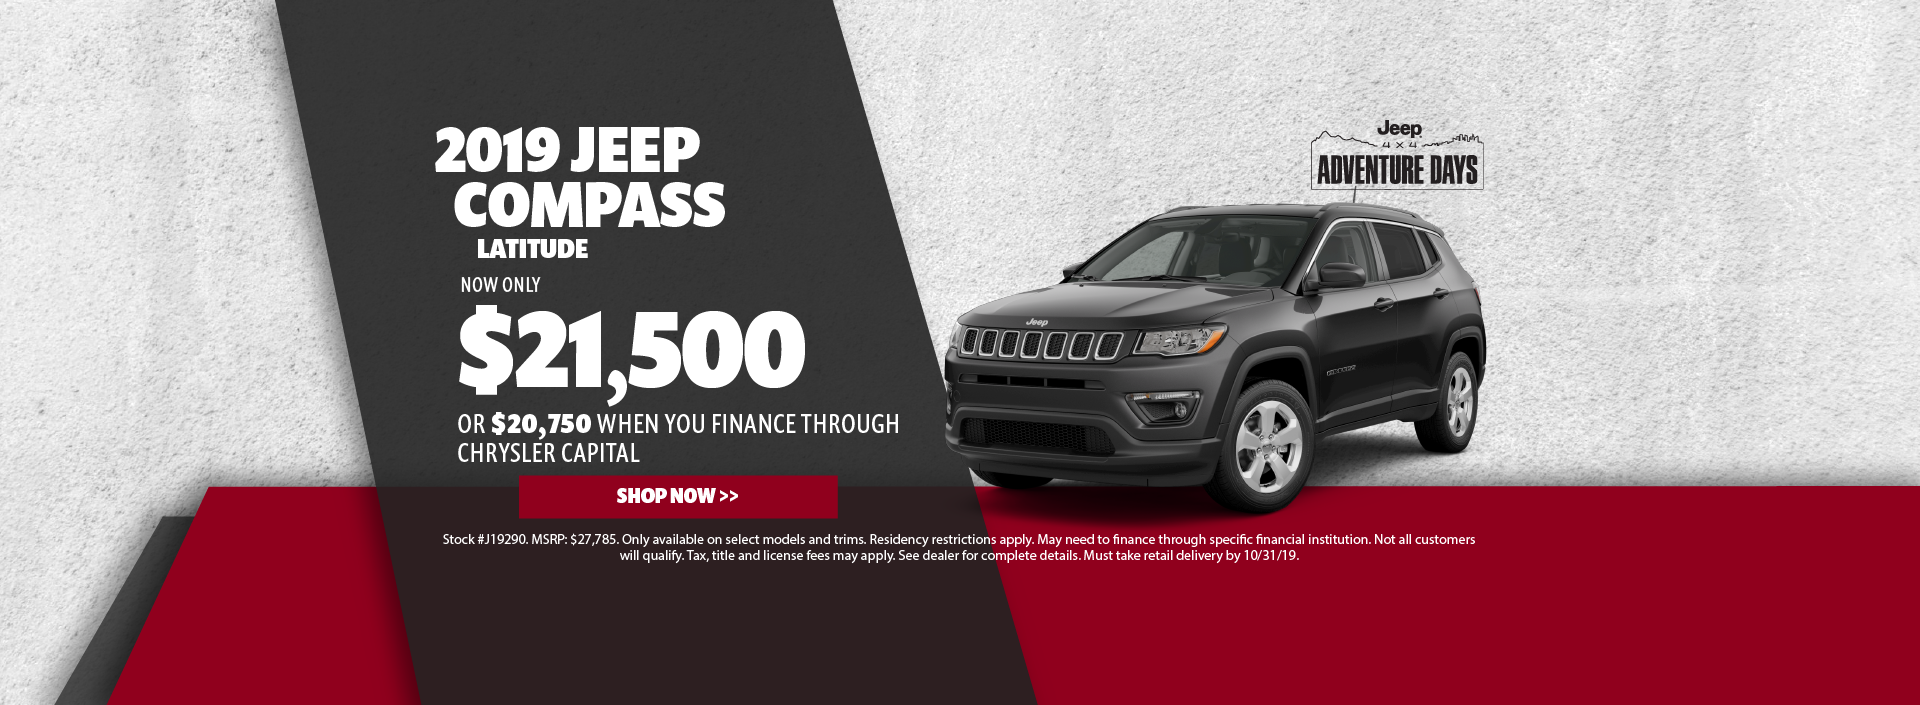 2019 Jeep Compass Offer